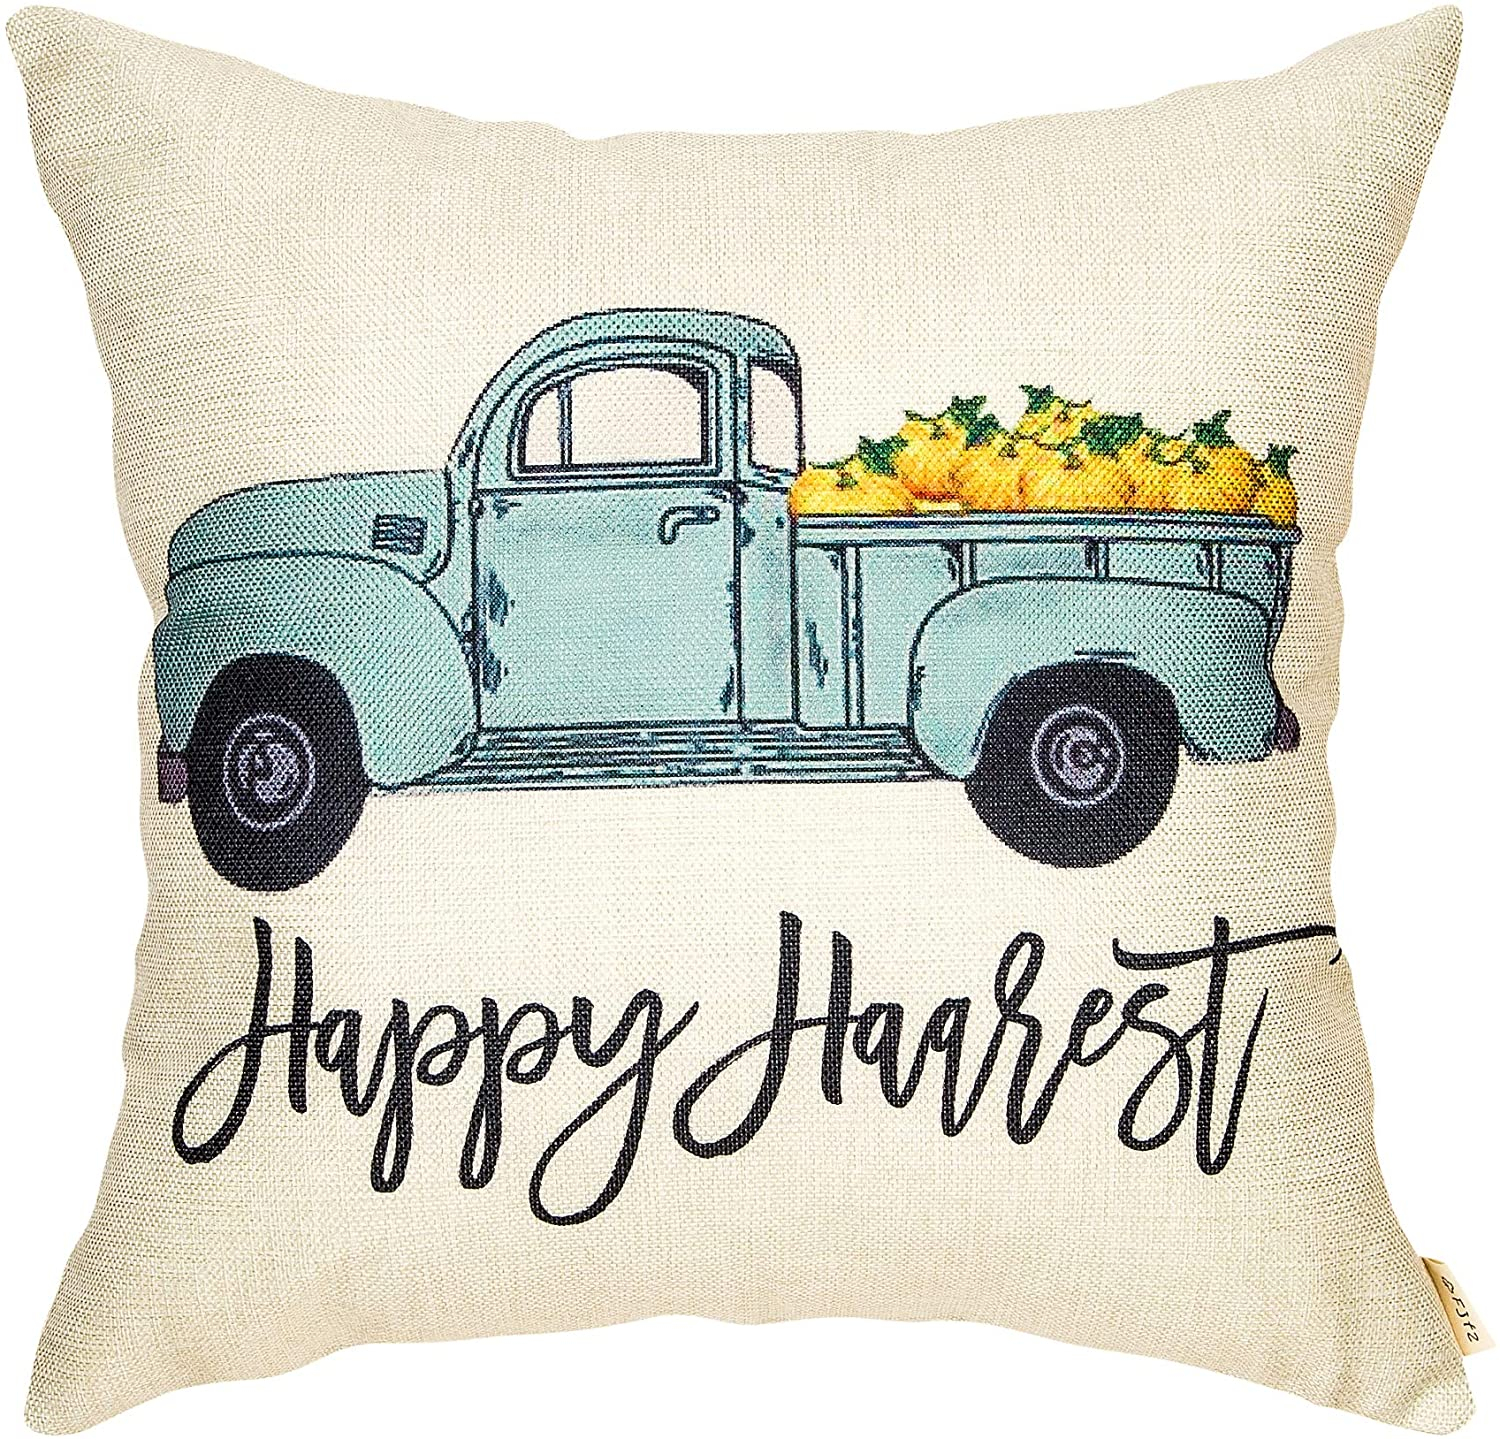 Fjfz Happy Harvest Truck Pumpkin Fall Farmhouse Style Thanksgiving Day Cotton Linen Home Decorative Throw Pillow Case Cushion Cover Words Sofa Couch, 18